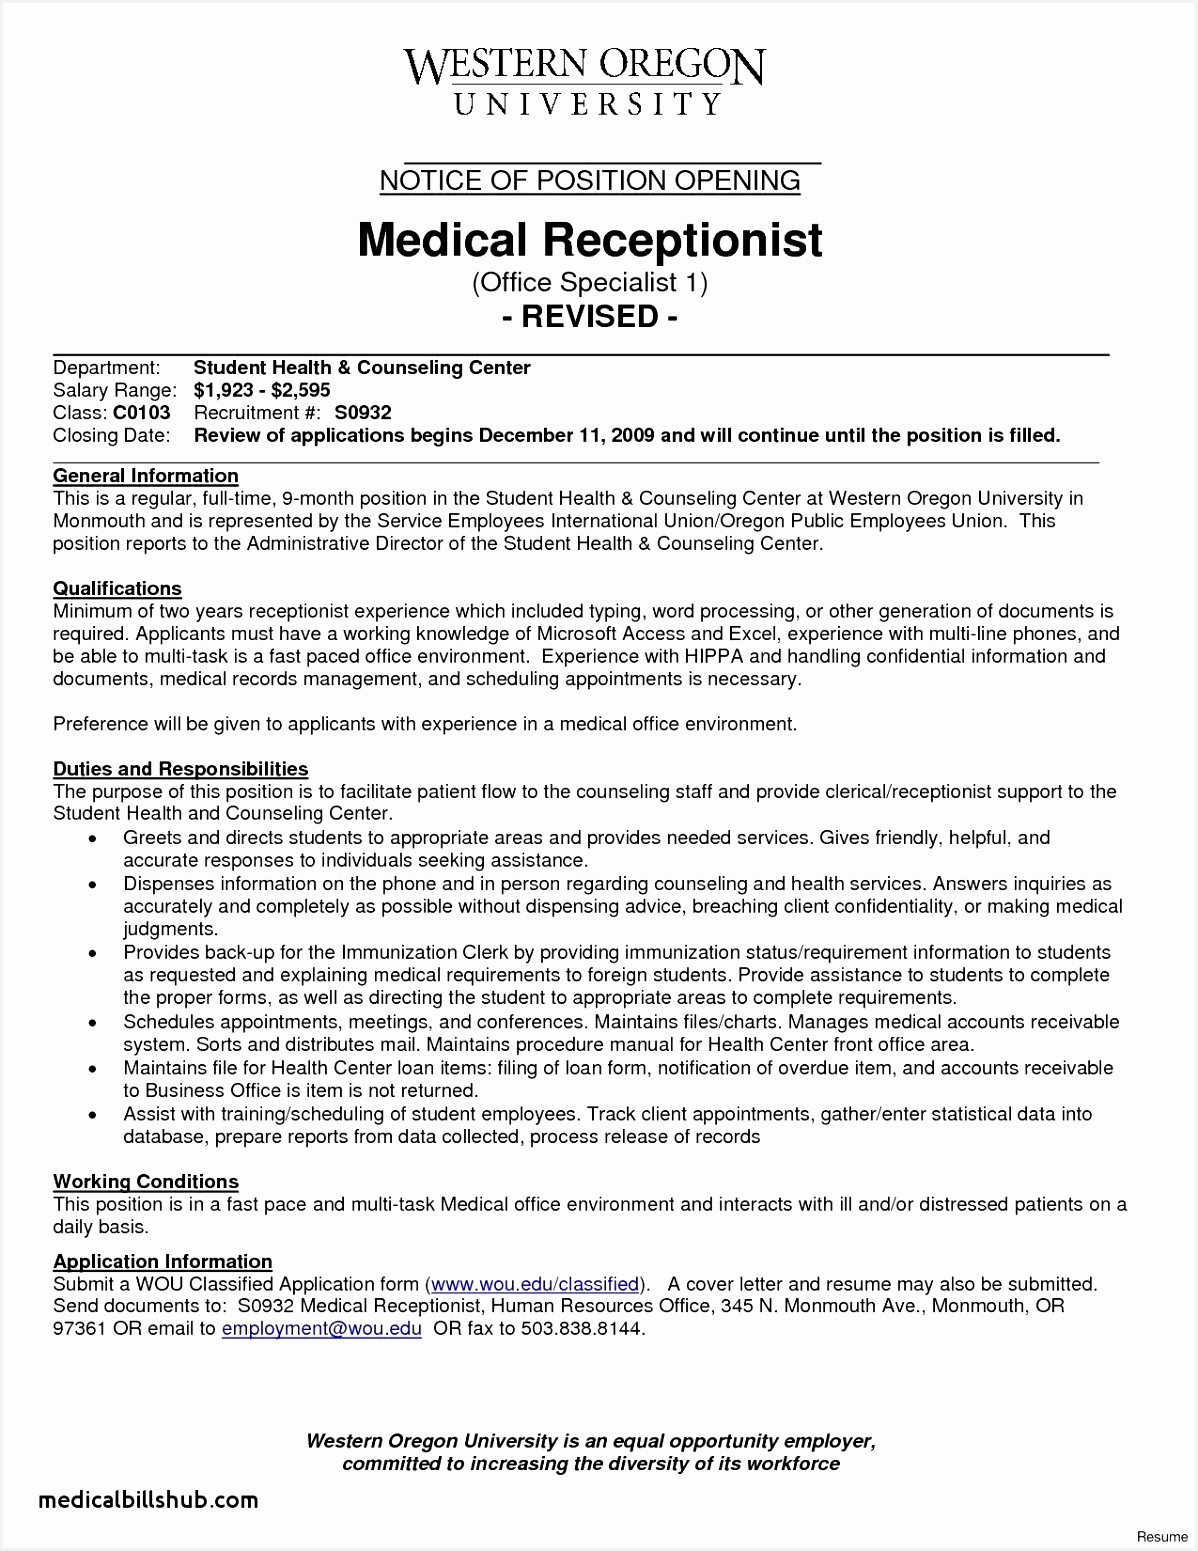 healthcare administration resume samples inspirational healthcare administration resume samples awesome access knowledge of healthcare administration resume 15511198zTke